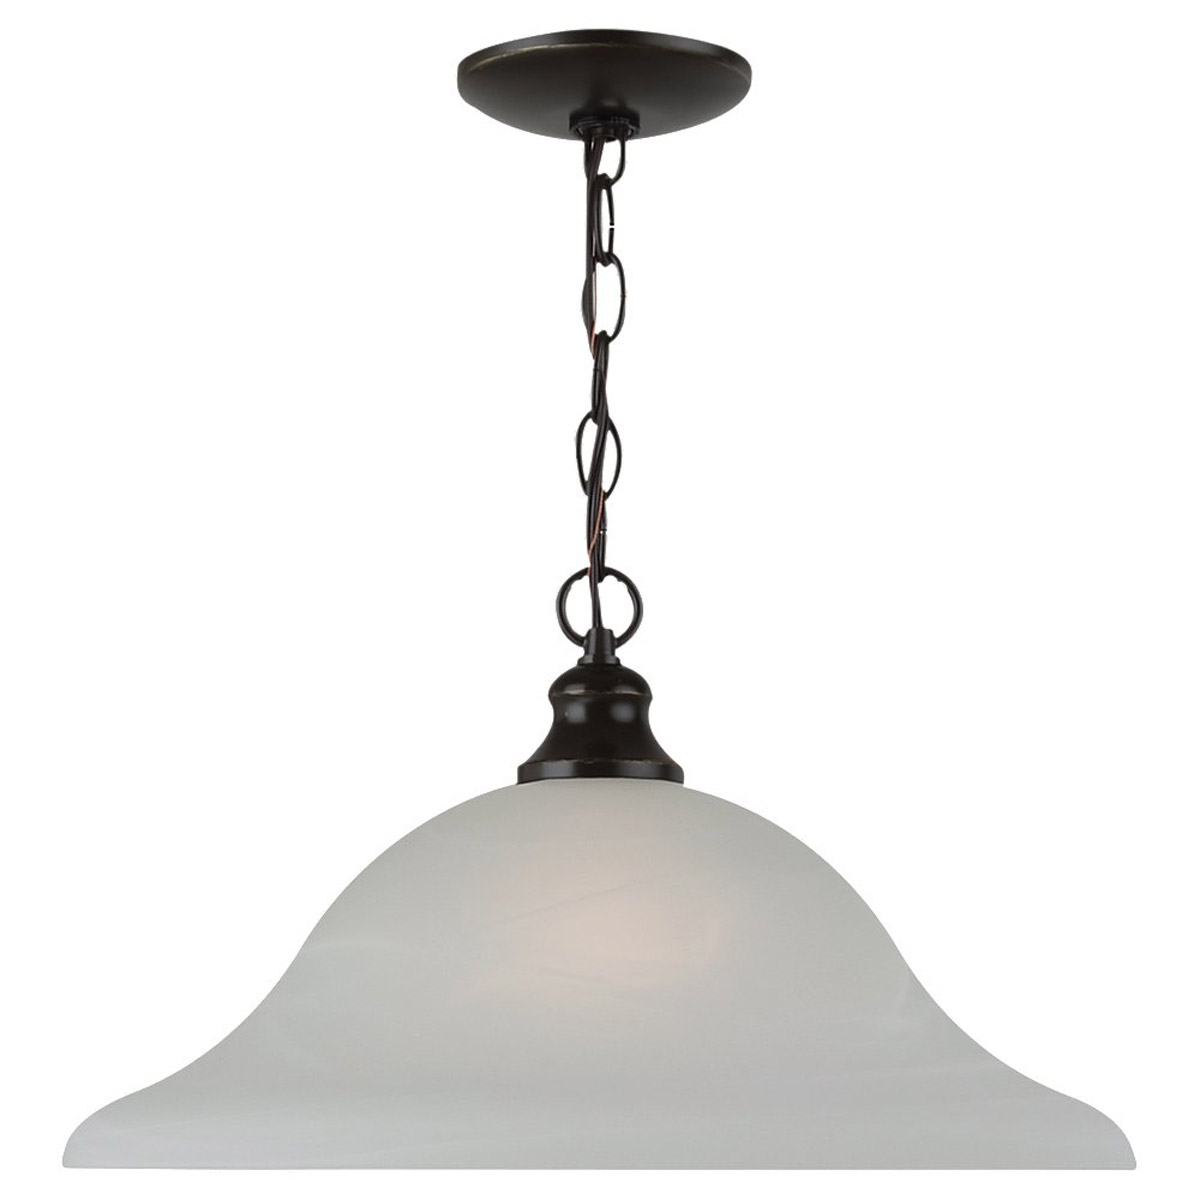 Sea Gull Lighting Windgate 1 Light Pendant in Heirloom Bronze 65942-782